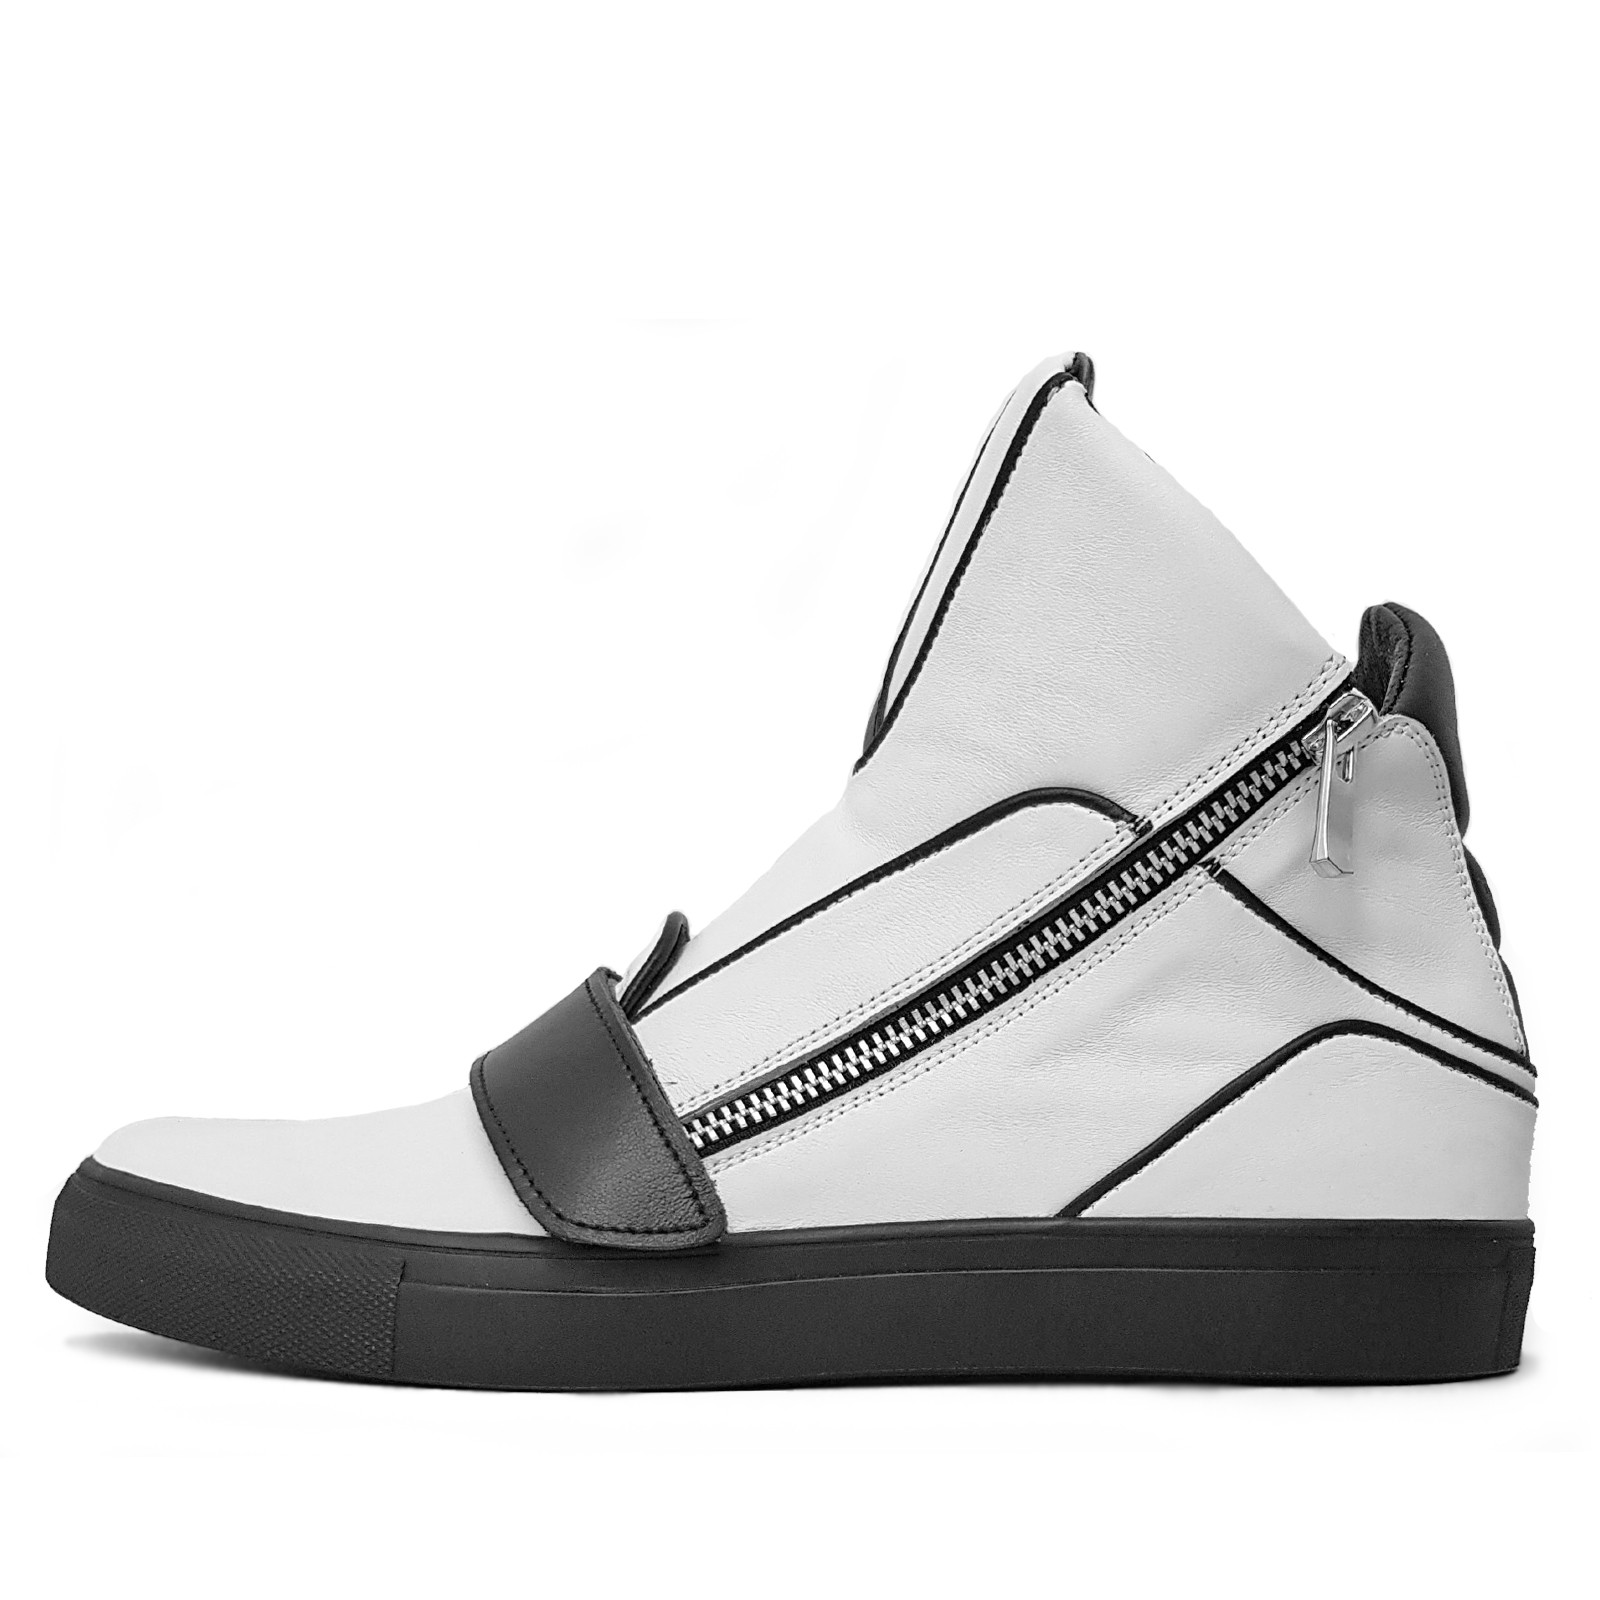 Men's high-top sneakers with zipper